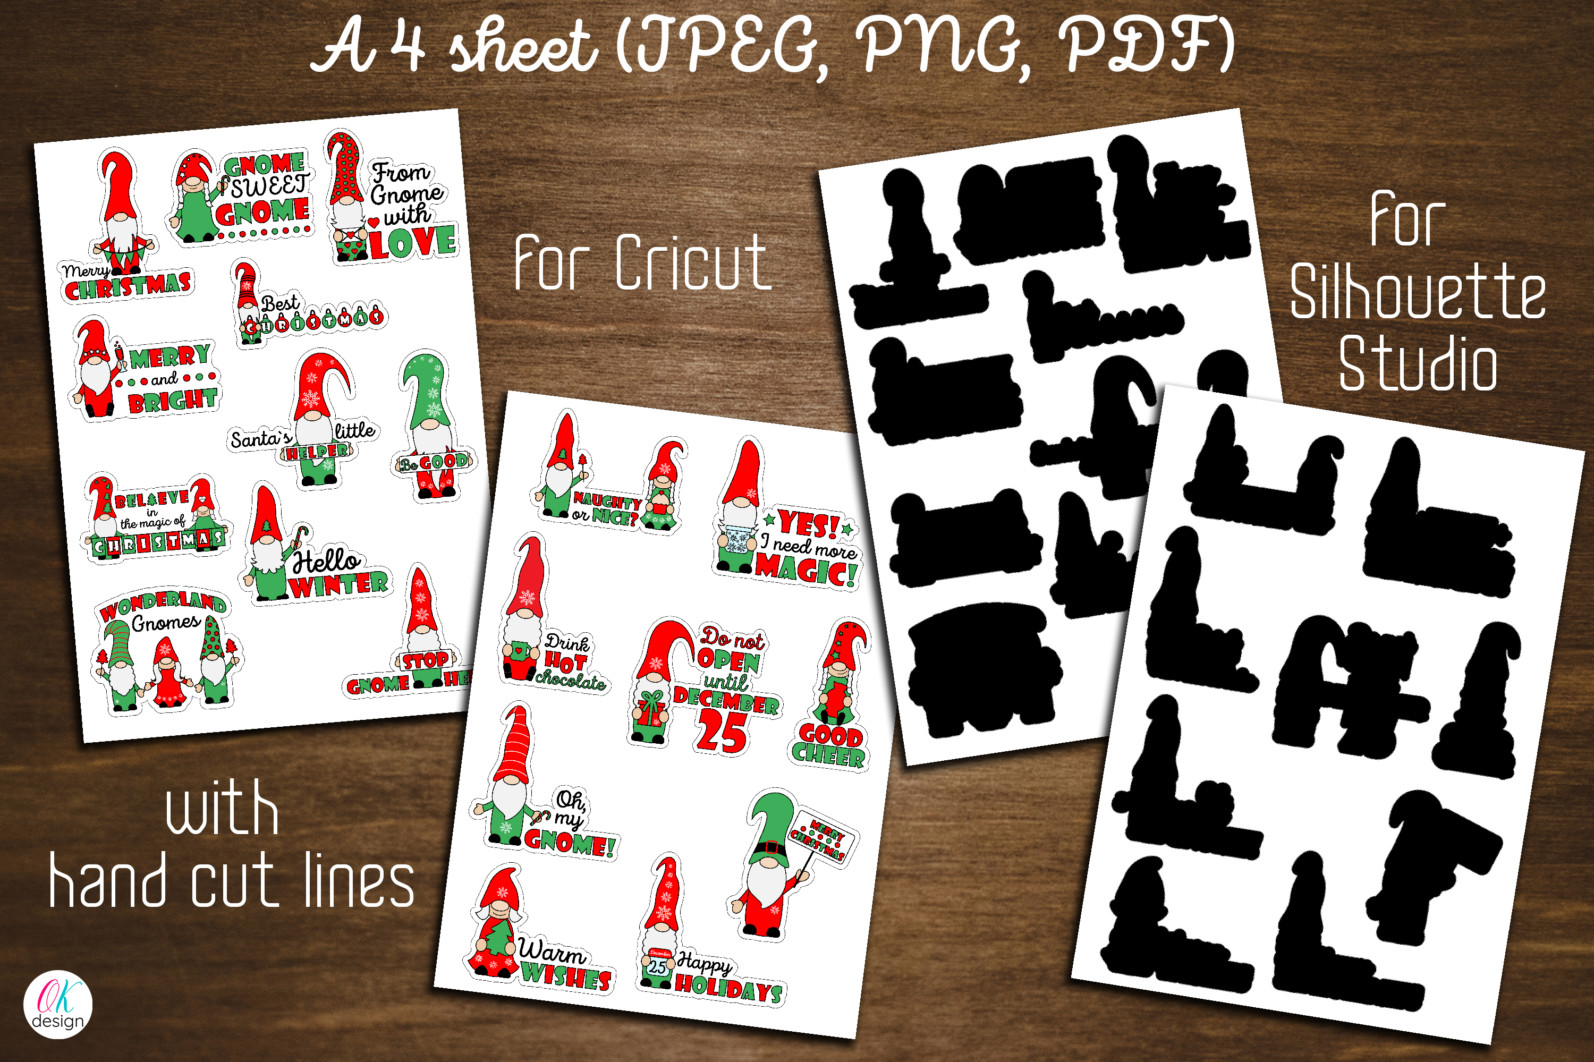 Christmas bundle Vol. 1. Christmas stickers. Christmas SVG bundle. - 20 Gnome Christmas bundle Christmas gnome sublimation Christmas stickers gnome Christmas stickers Christmas gnome stickers Gnome stickers print and cut stickers scaled -